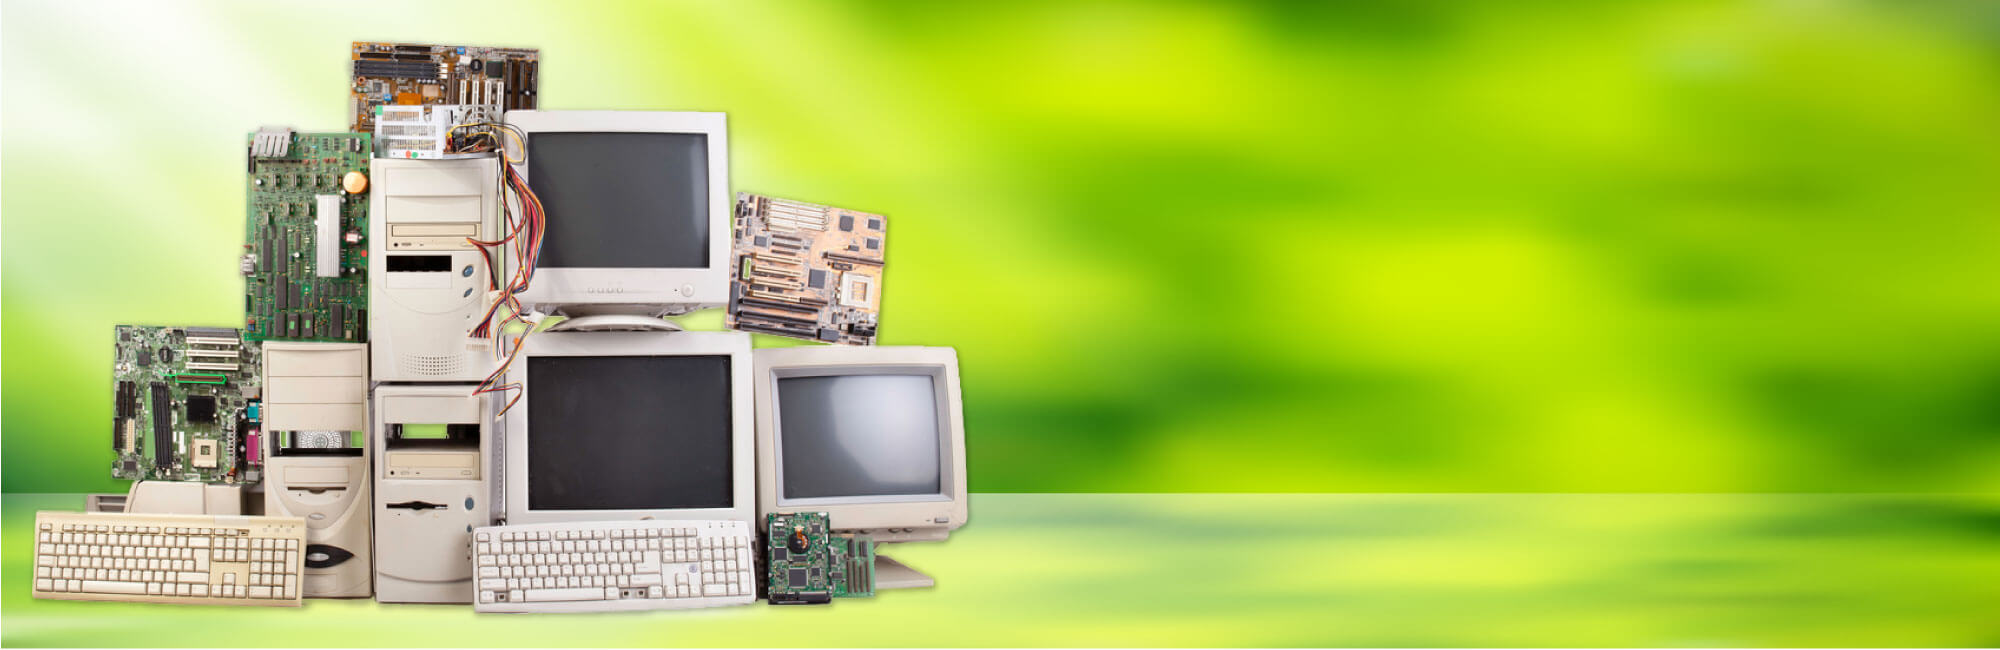 Pile of old computers, circut boards, and keyboards on a green background | Representing e-waste